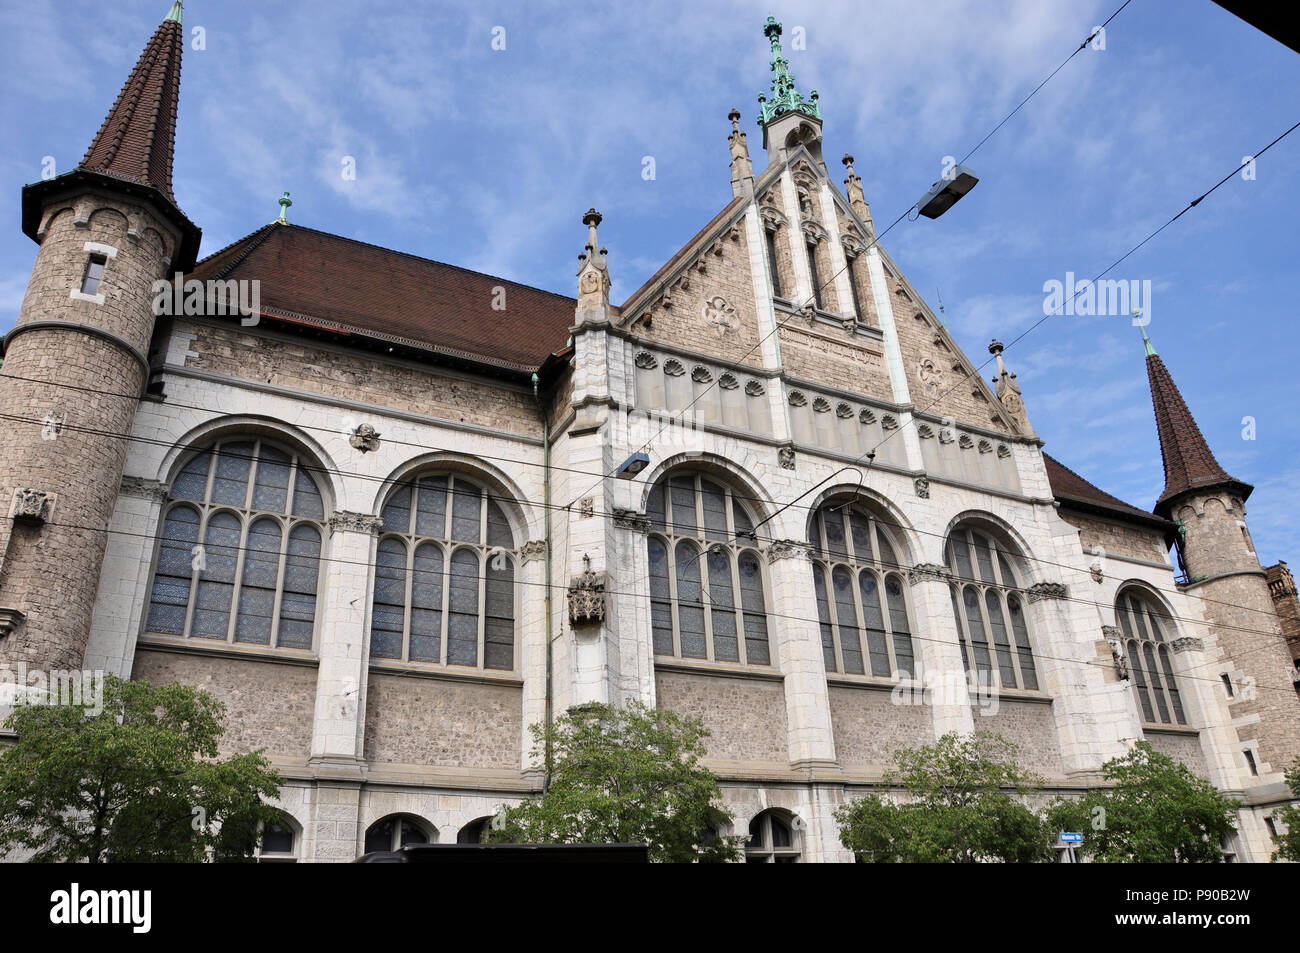 Zürich-city: The Swiss National Museum shows the history and culture of Switzerland - Stock Image